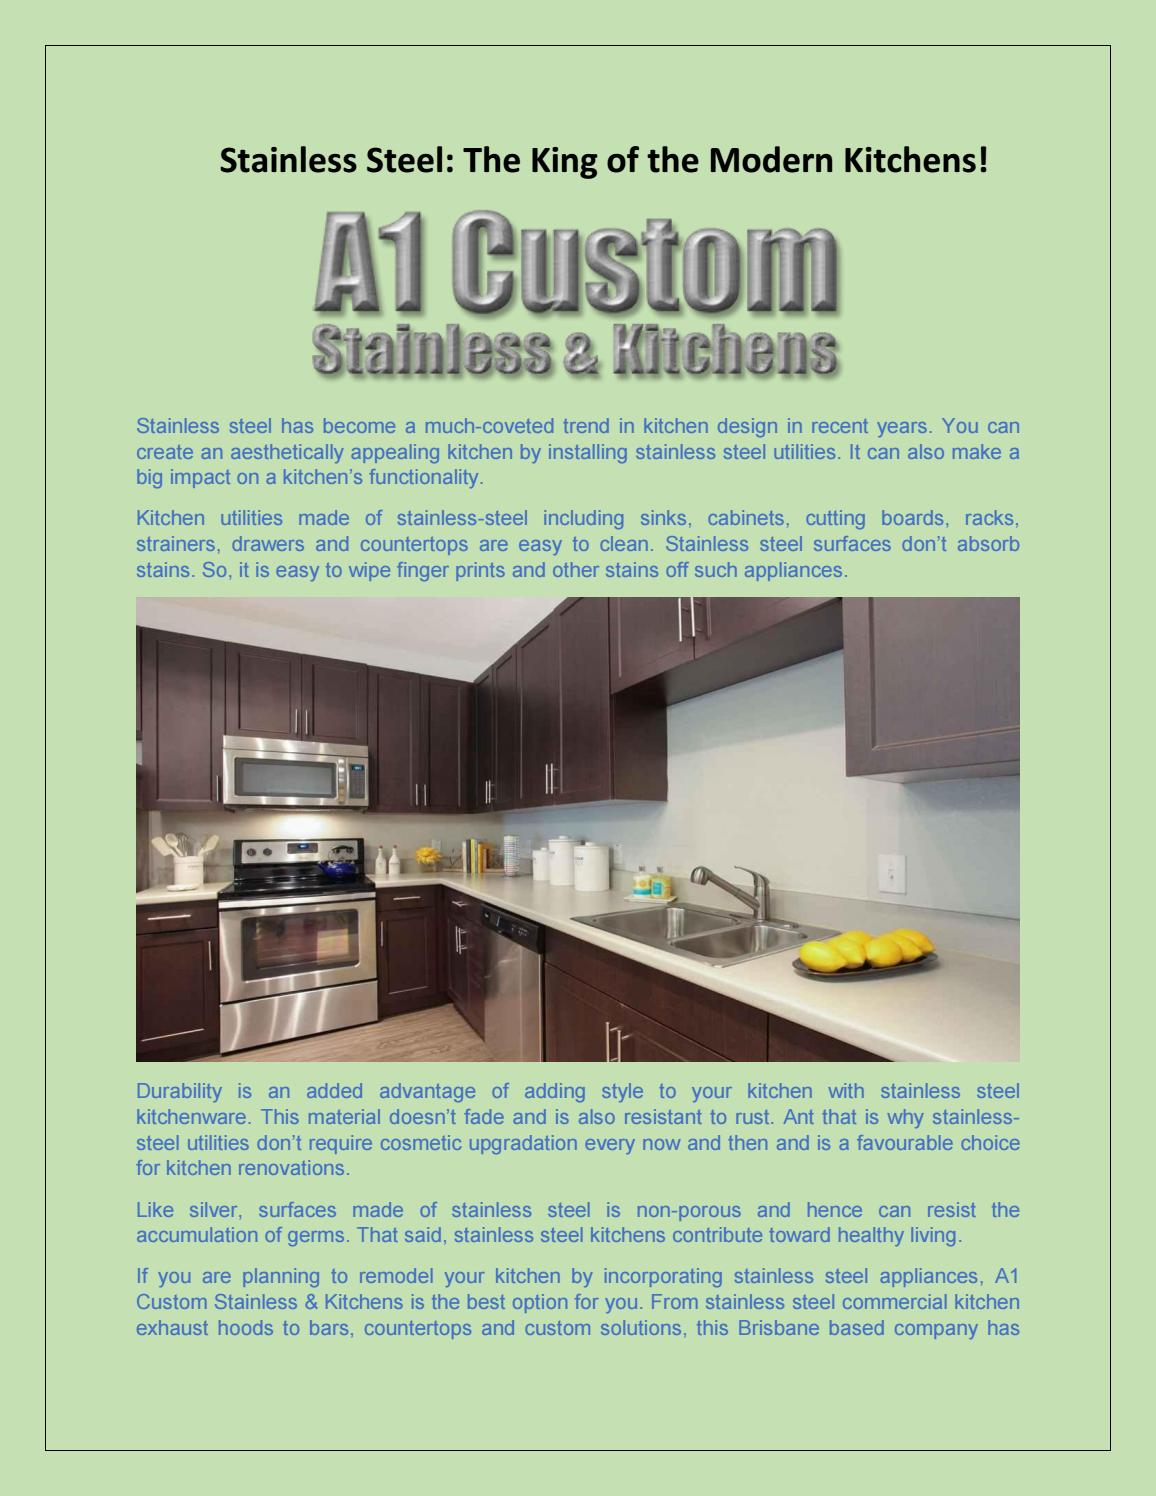 commercial kitchen exhaust a1 custom